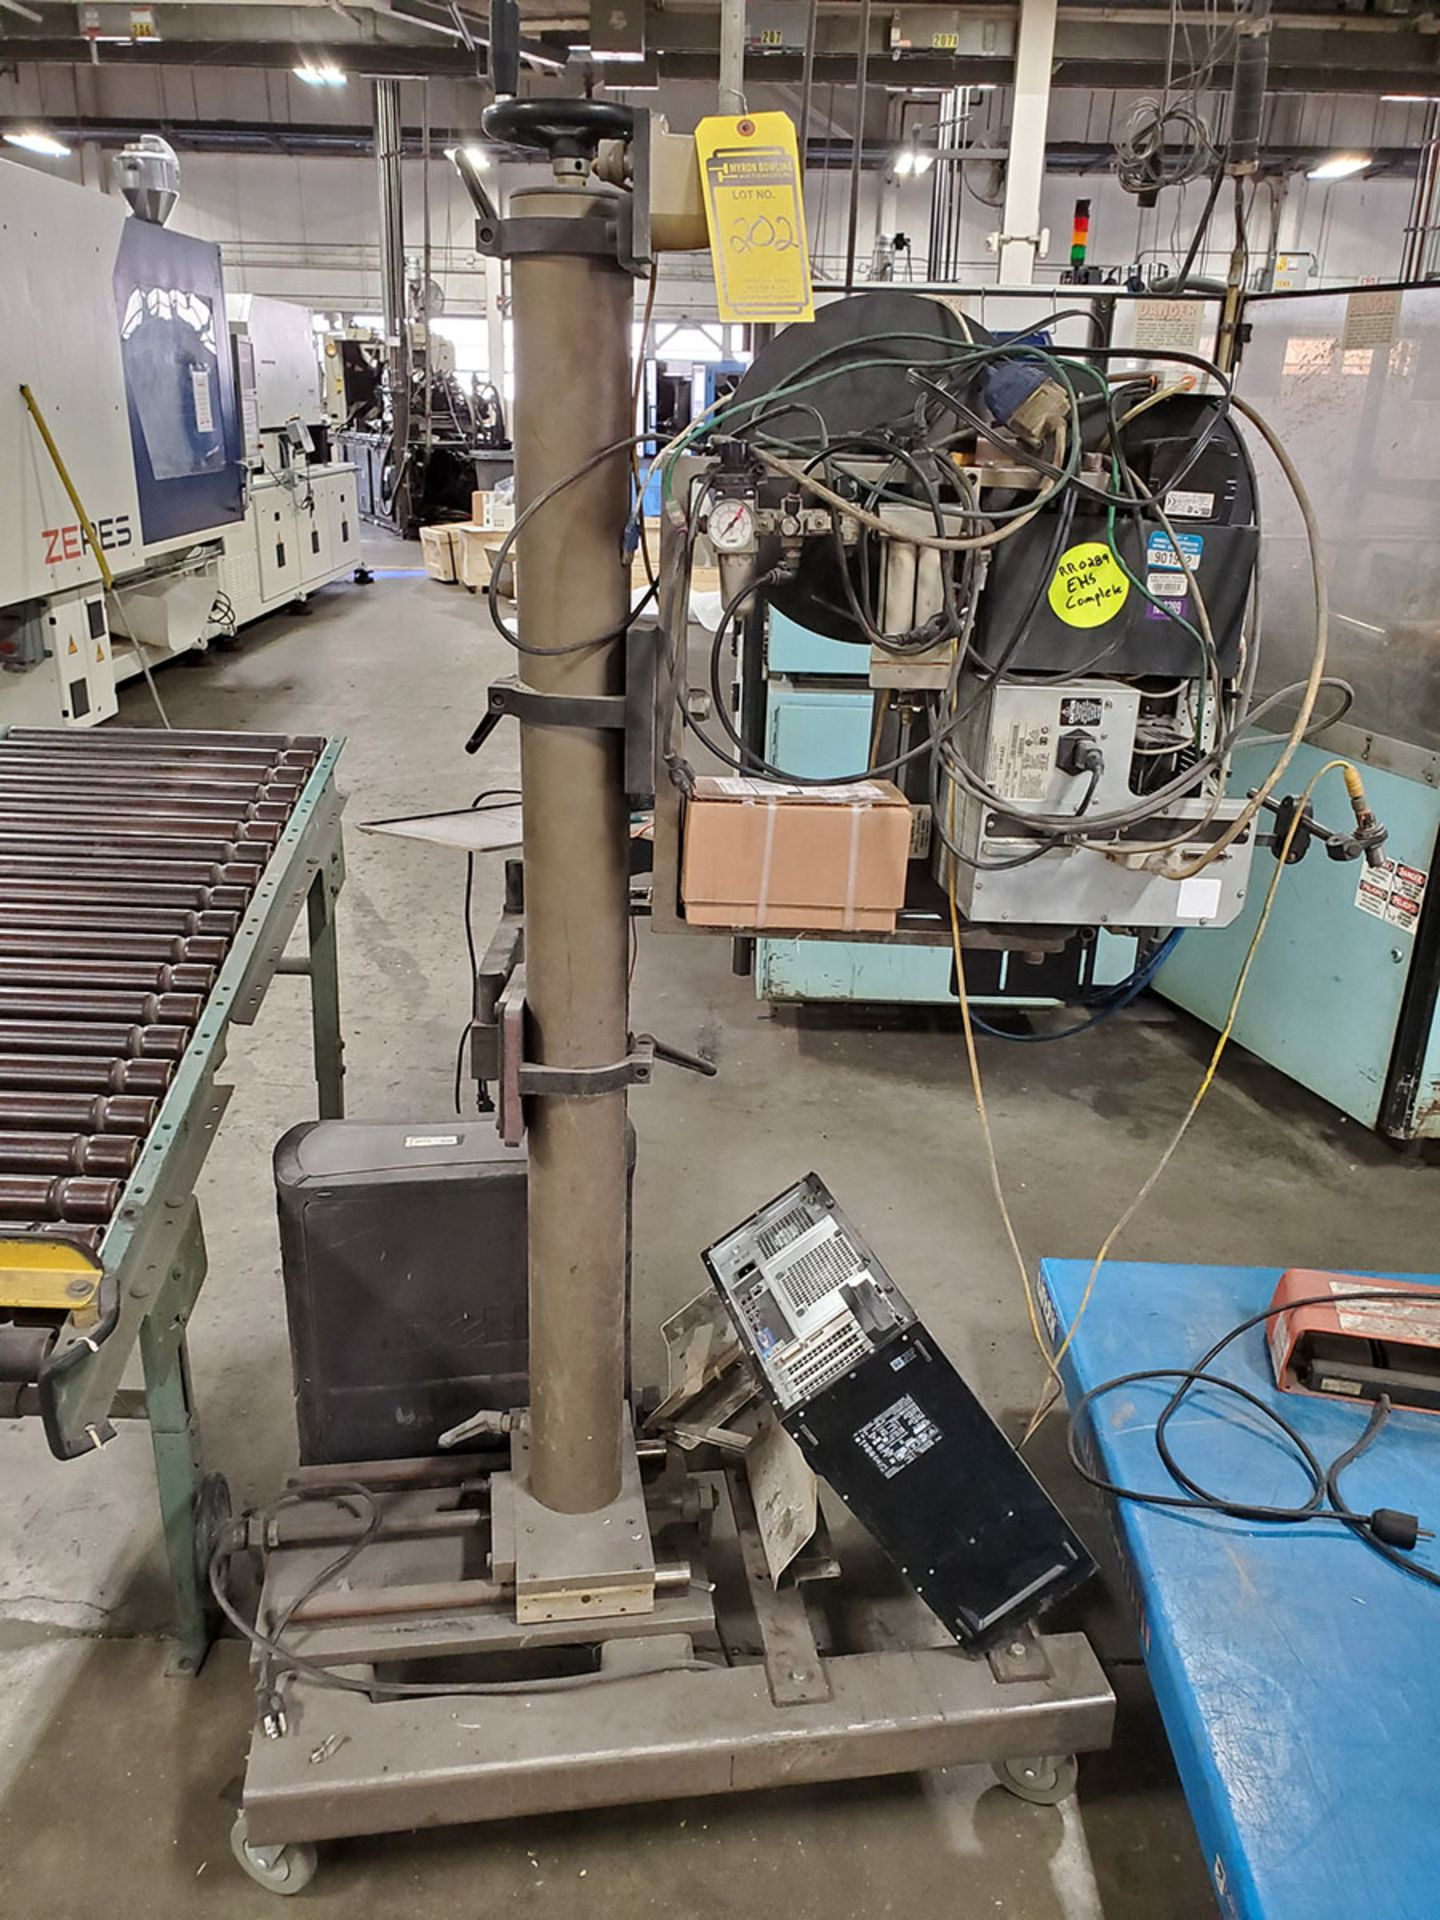 Lot 202 - LOT OF (2) BETTER PACK 555E ELECTRONIC TAPE DISPENSERS & ACTION GSC LABELER ON ROLLING STAND